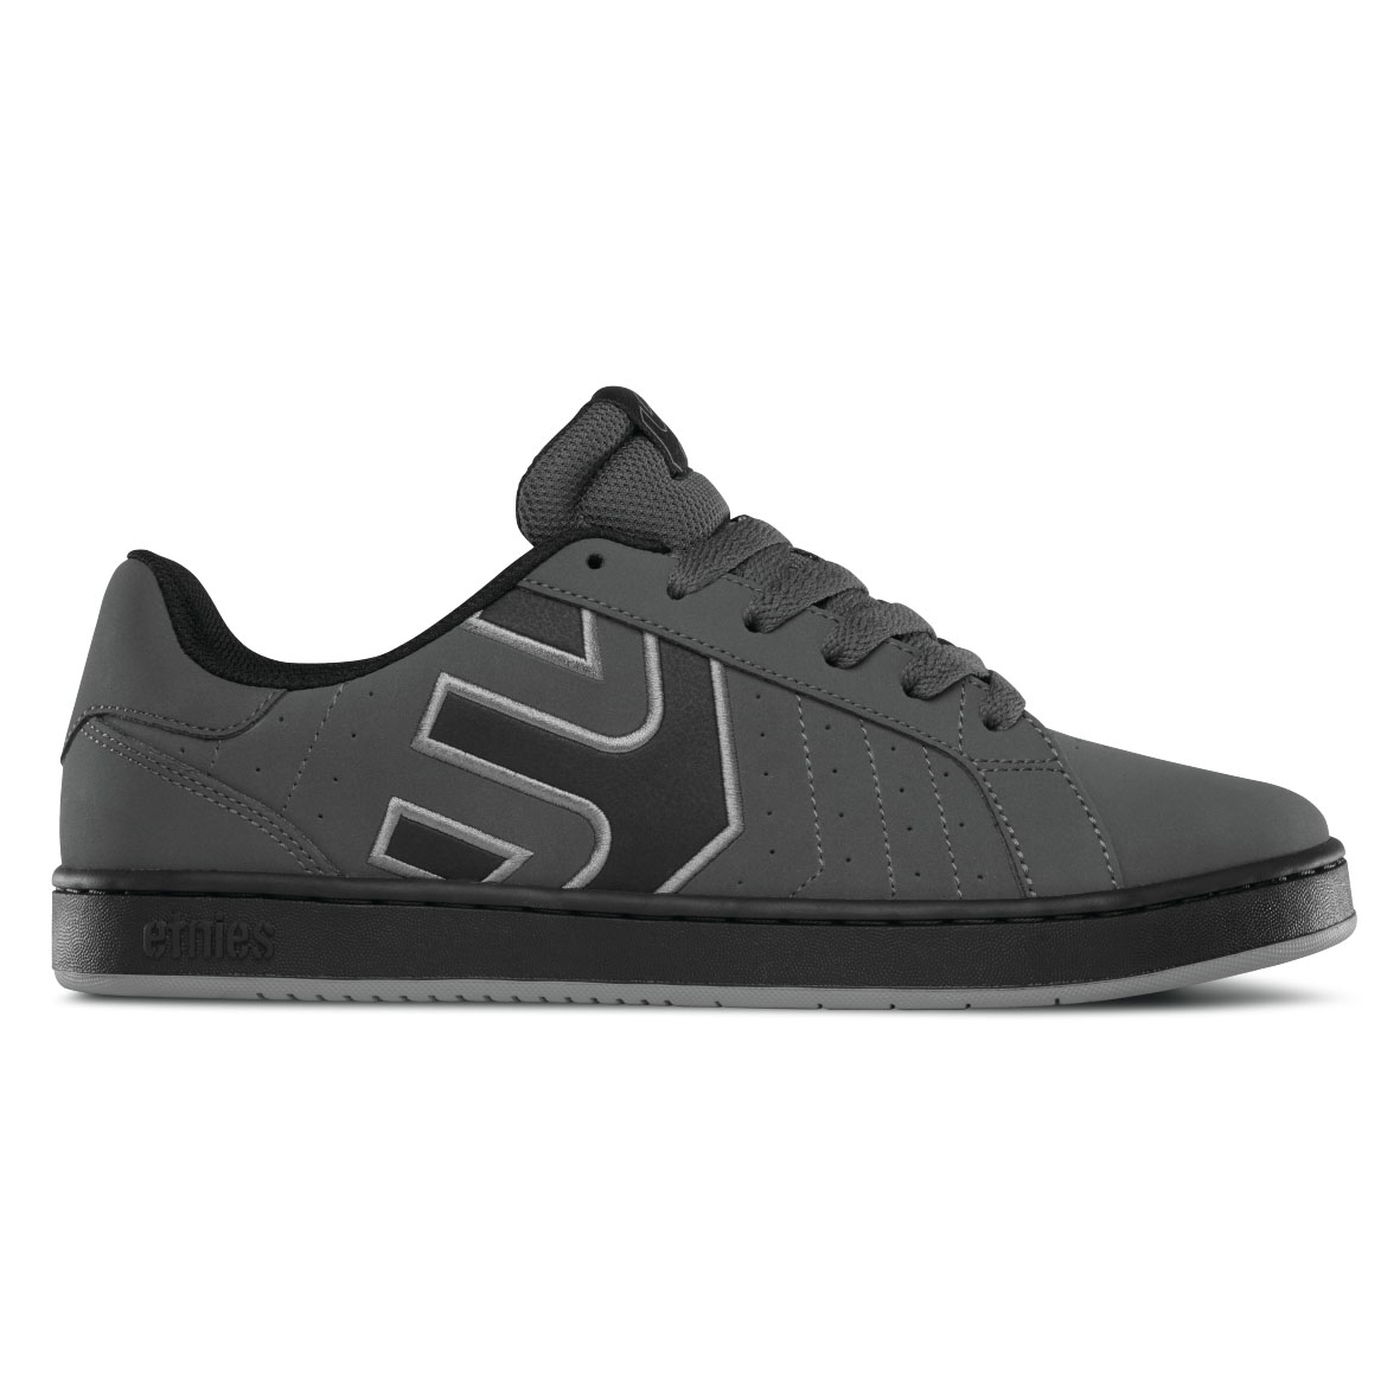 1045f33ee83300 The Fader LS also has a reinforced Ollie area for extra durability. If your  looking for a stylish and comfortable shoe then the Etnies Fader fits the  bill.